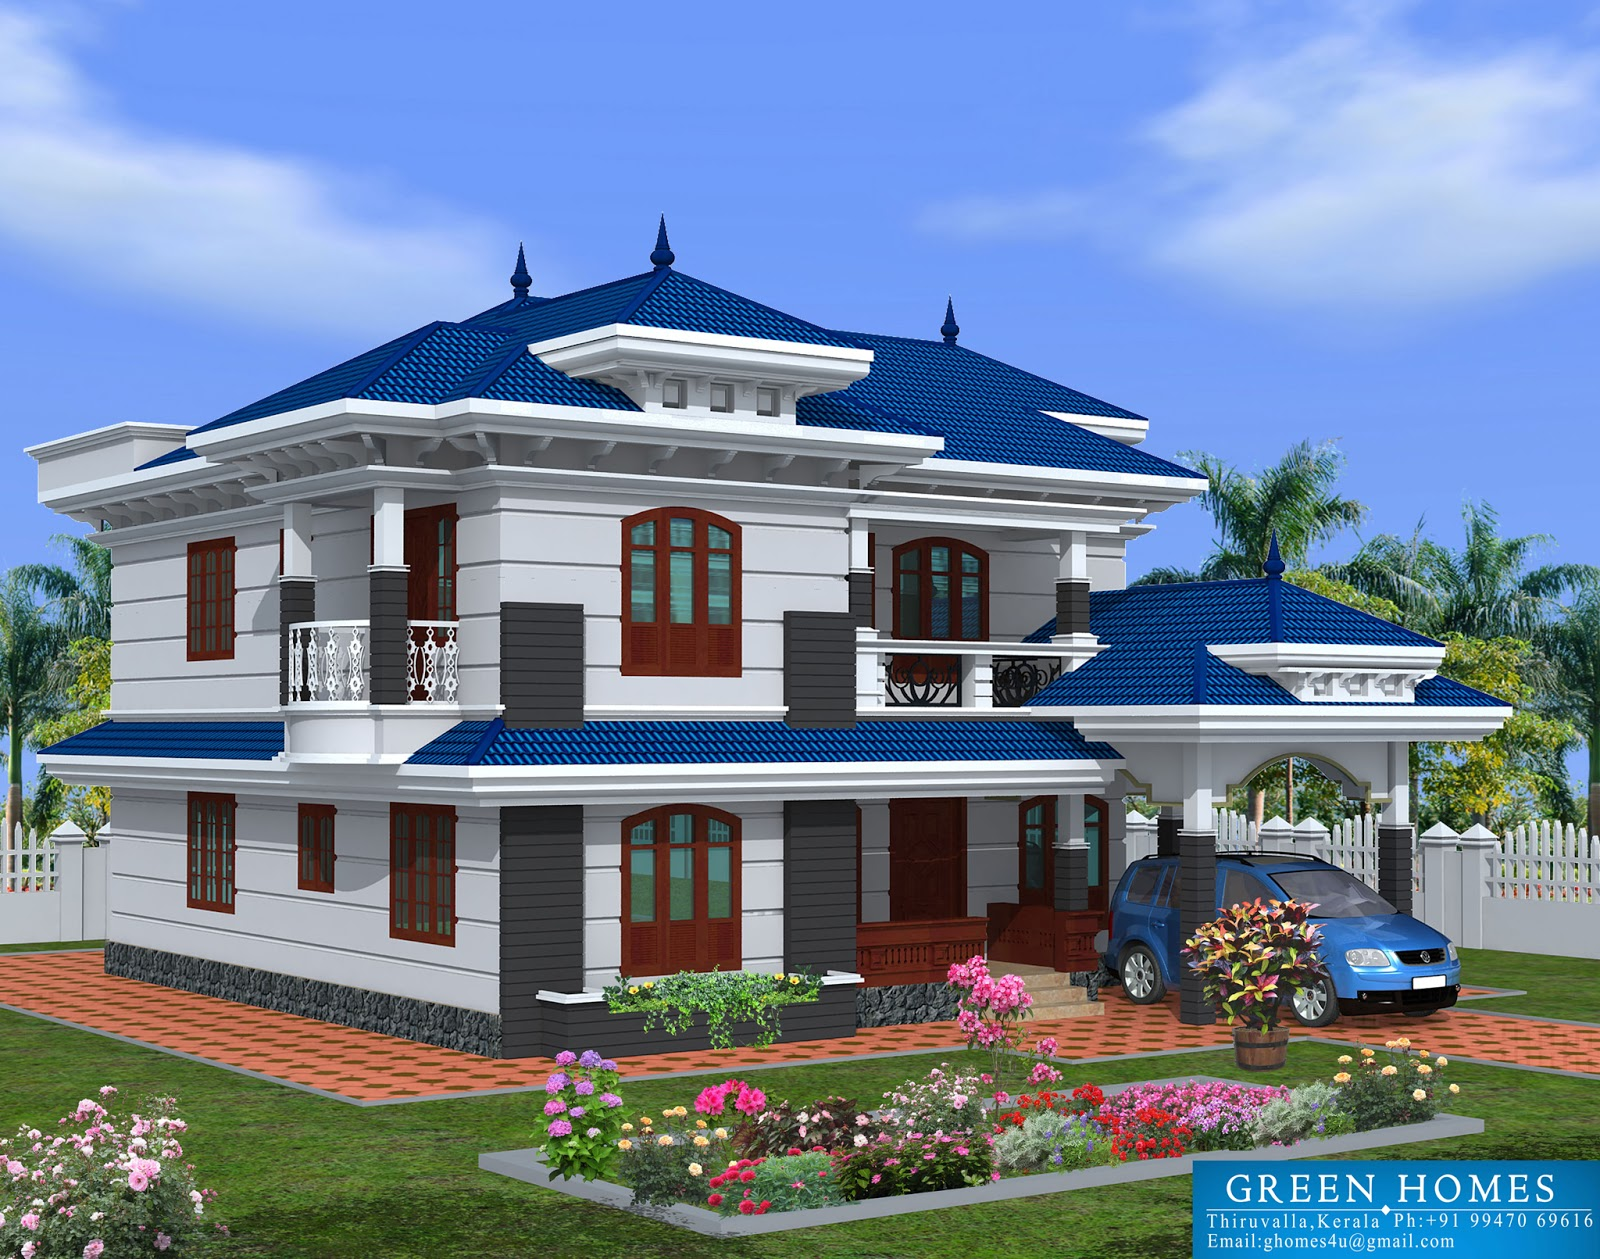 Green homes november 2012 for Kerala house construction plans